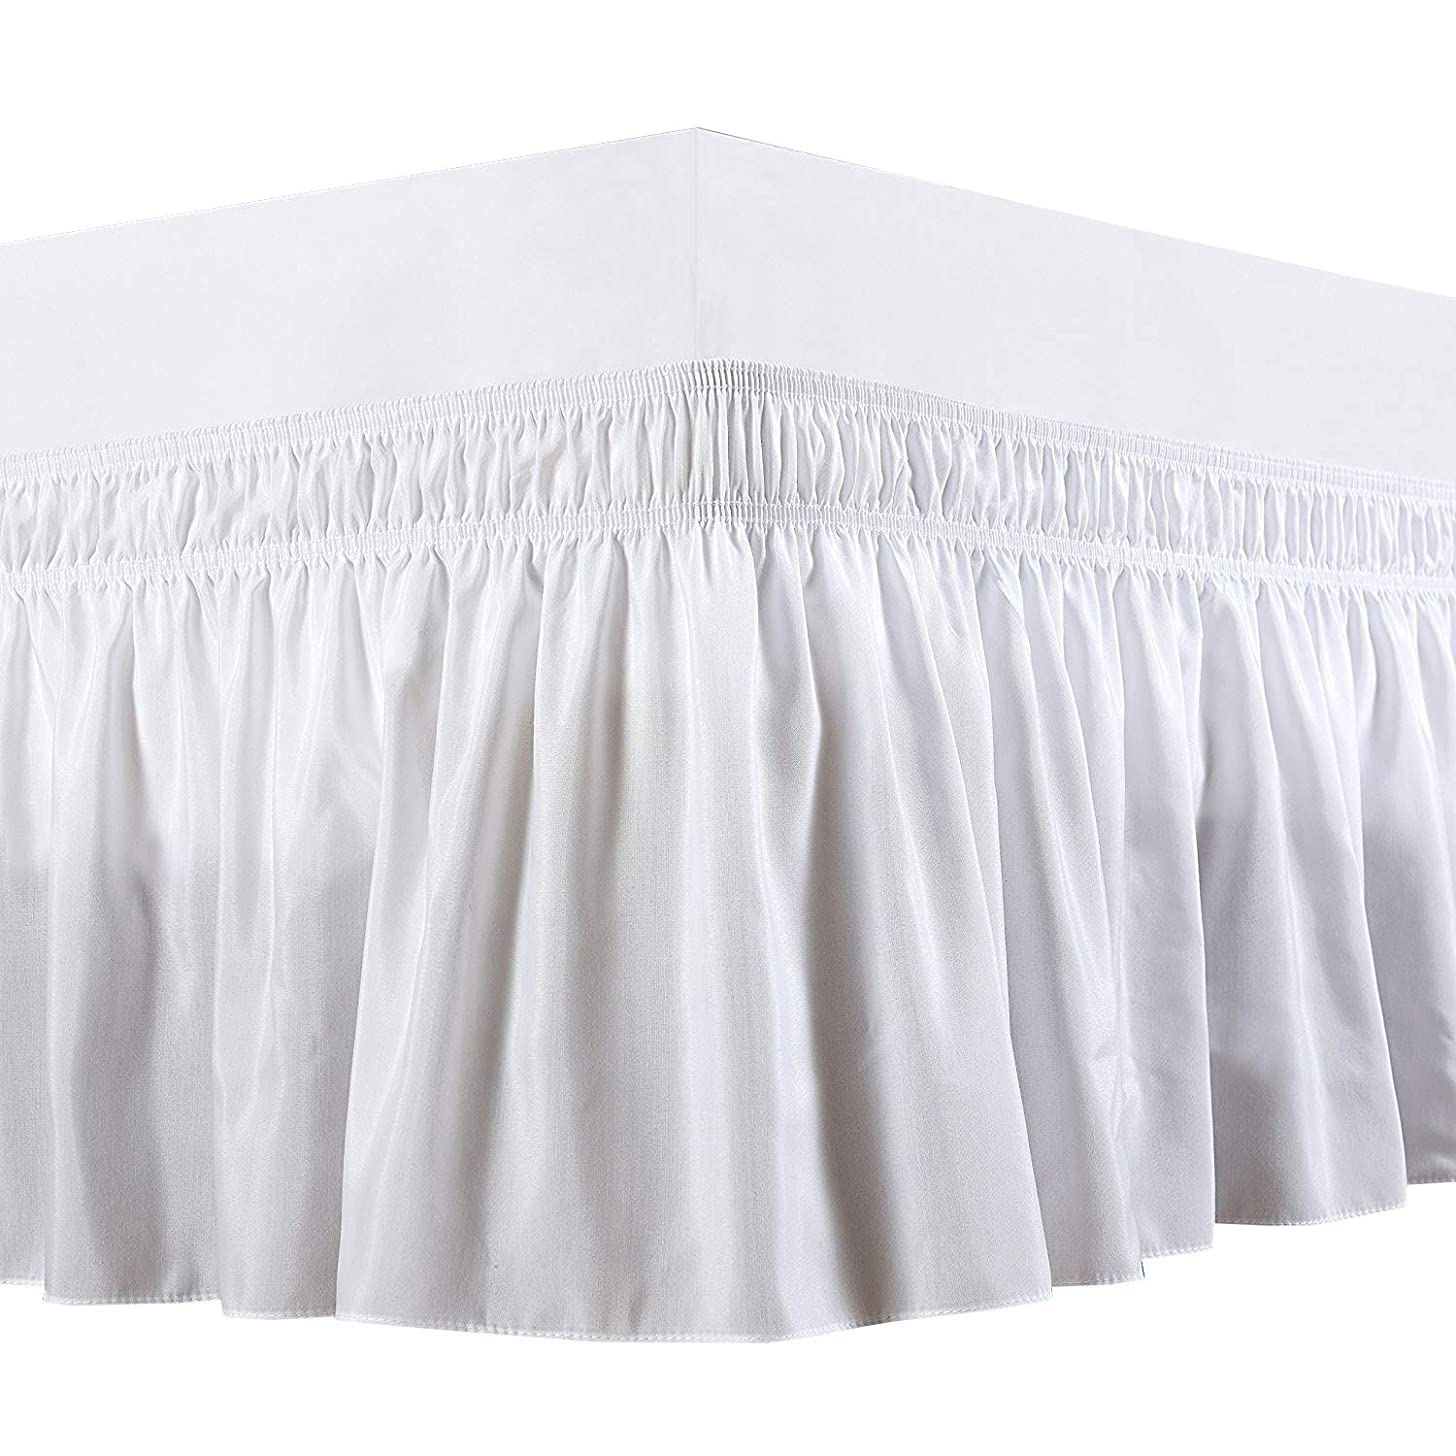 Wrap Around Bed Skirt -Polyester/Microfiber Elastic Dust Ruffle Three Fabric Sides Silky Soft & Wrinkle Free Classic Stylish Look in Your Bedroom (White, Twin /14) by-Rajlinen …